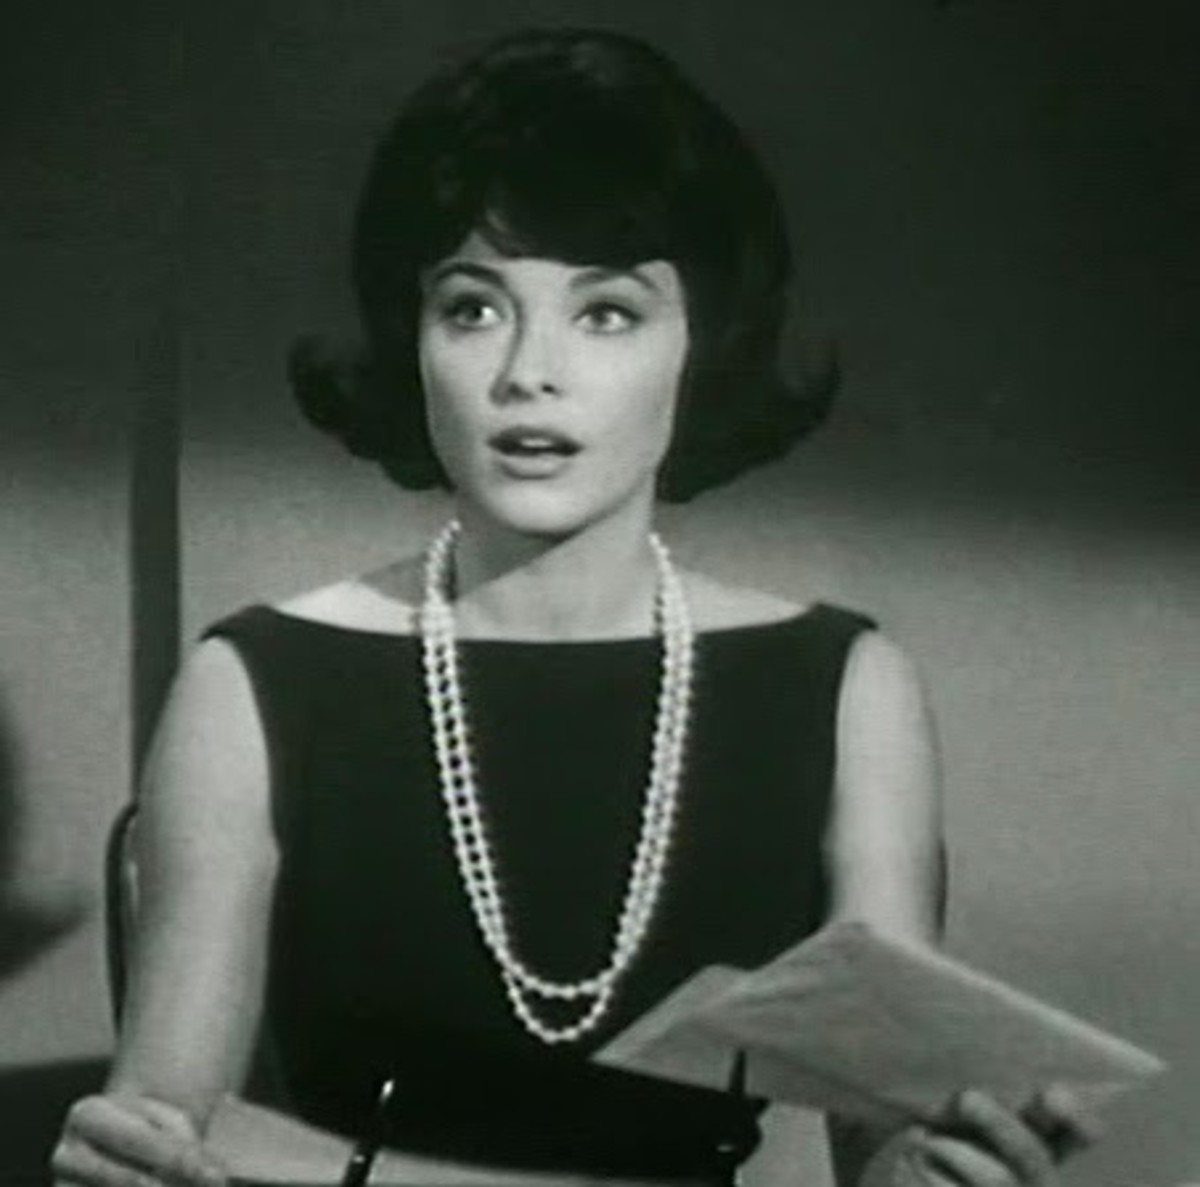 Sharon in the role of Janet Trego in the Beverly Hillbillies.